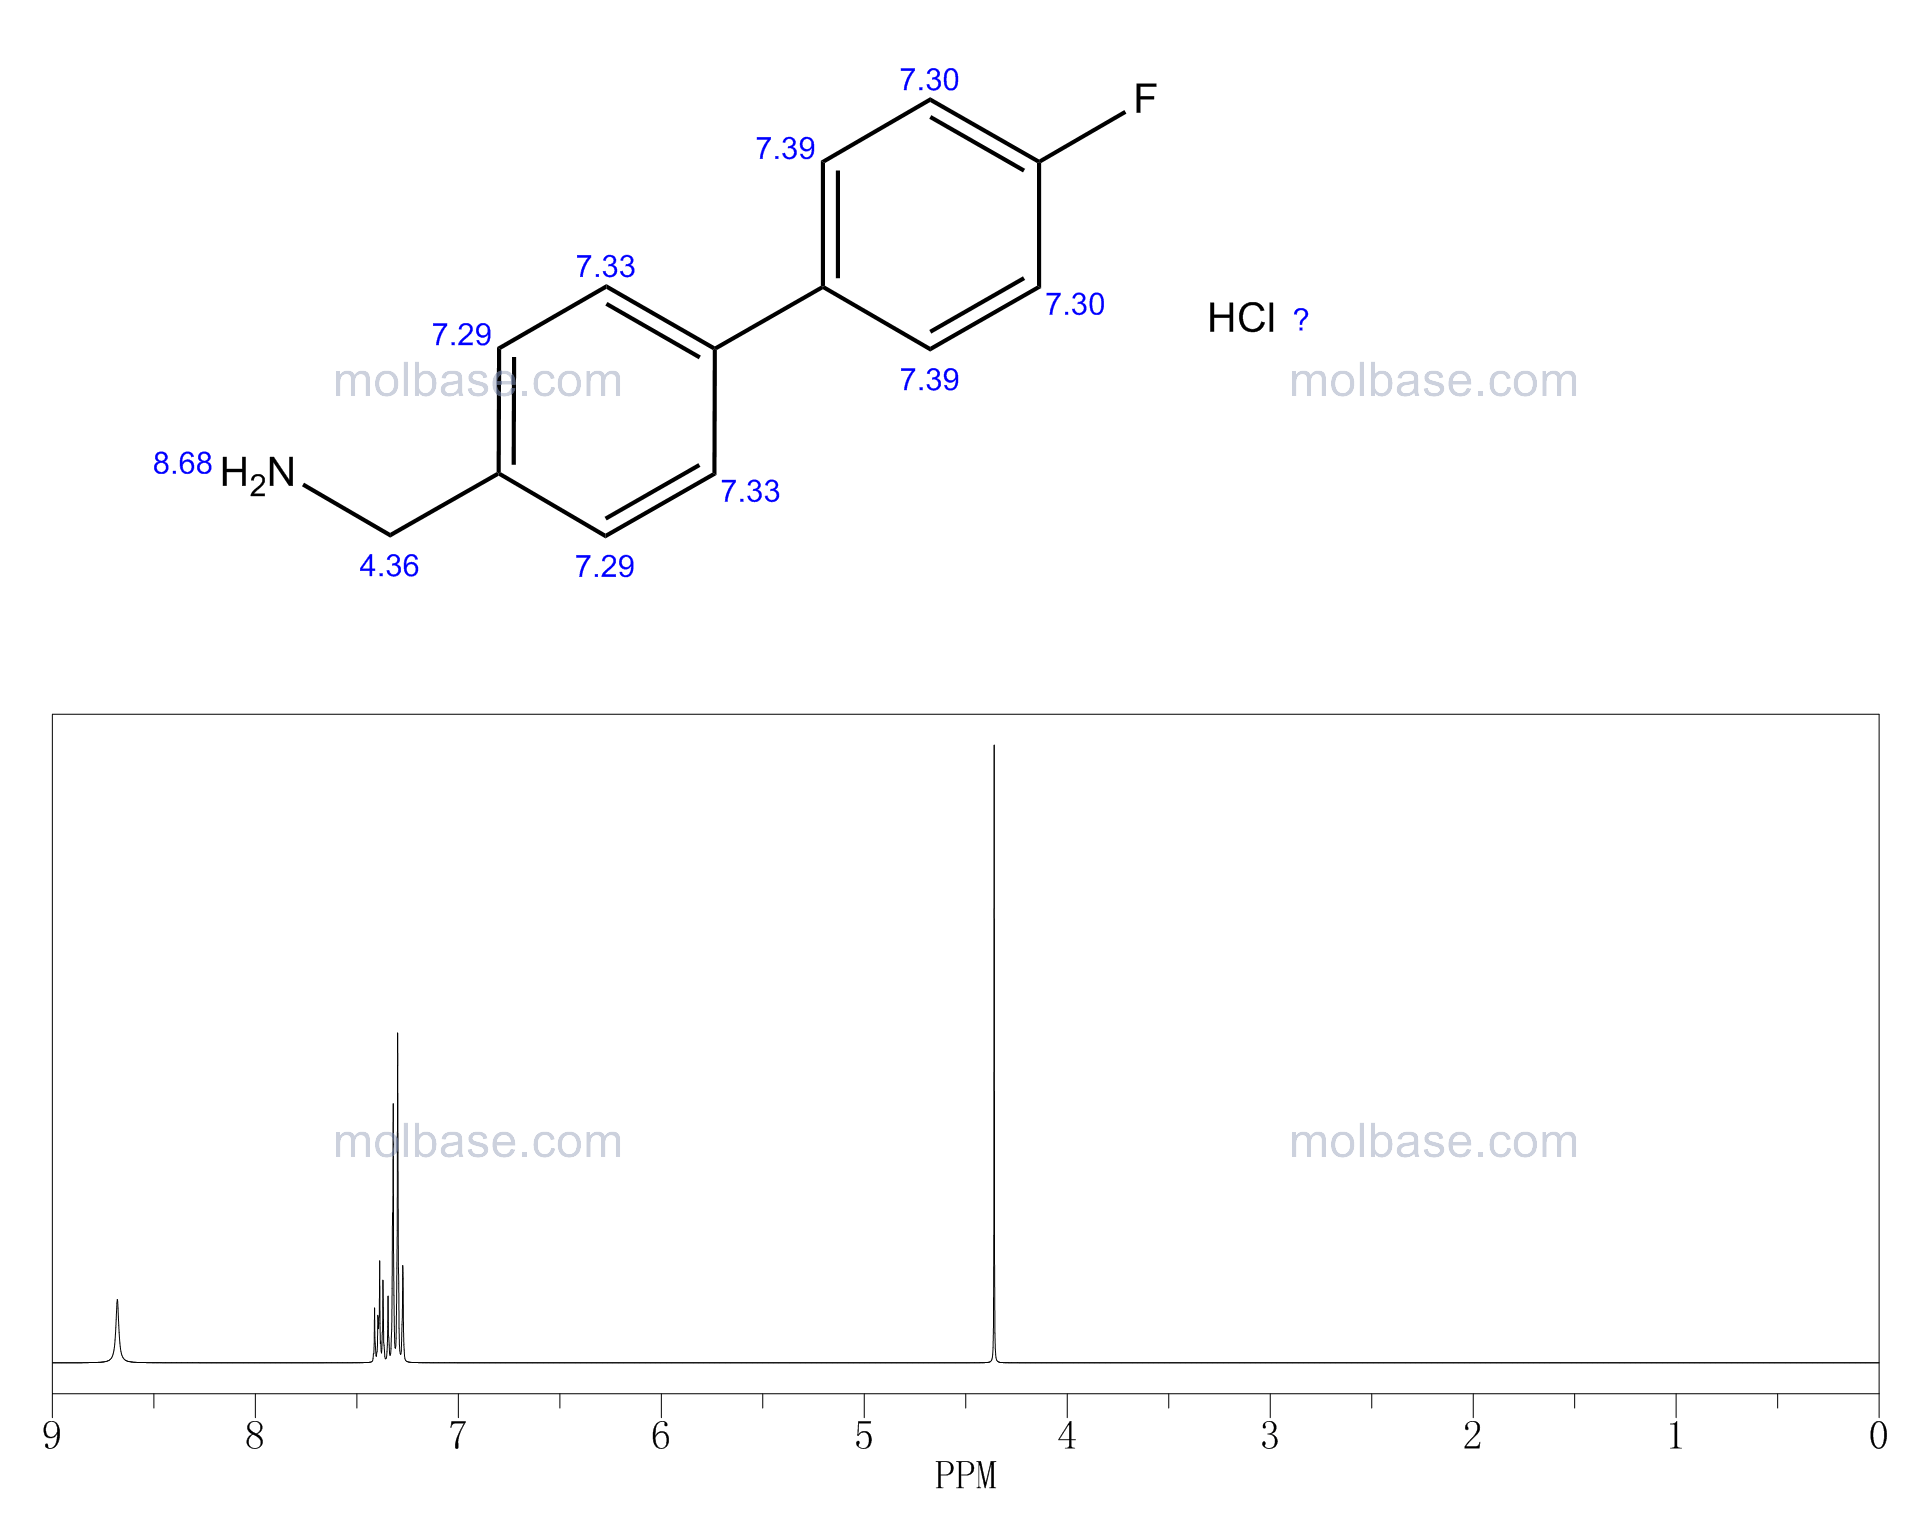 C-(4'-FLUORO-BIPHENYL-4-YL)-METHYLAMINE HYDROCHLORIDE NMR spectra analysis, Chemical CAS NO. 518357-40-9 NMR spectral analysis, C-(4'-FLUORO-BIPHENYL-4-YL)-METHYLAMINE HYDROCHLORIDE C-NMR spectrum